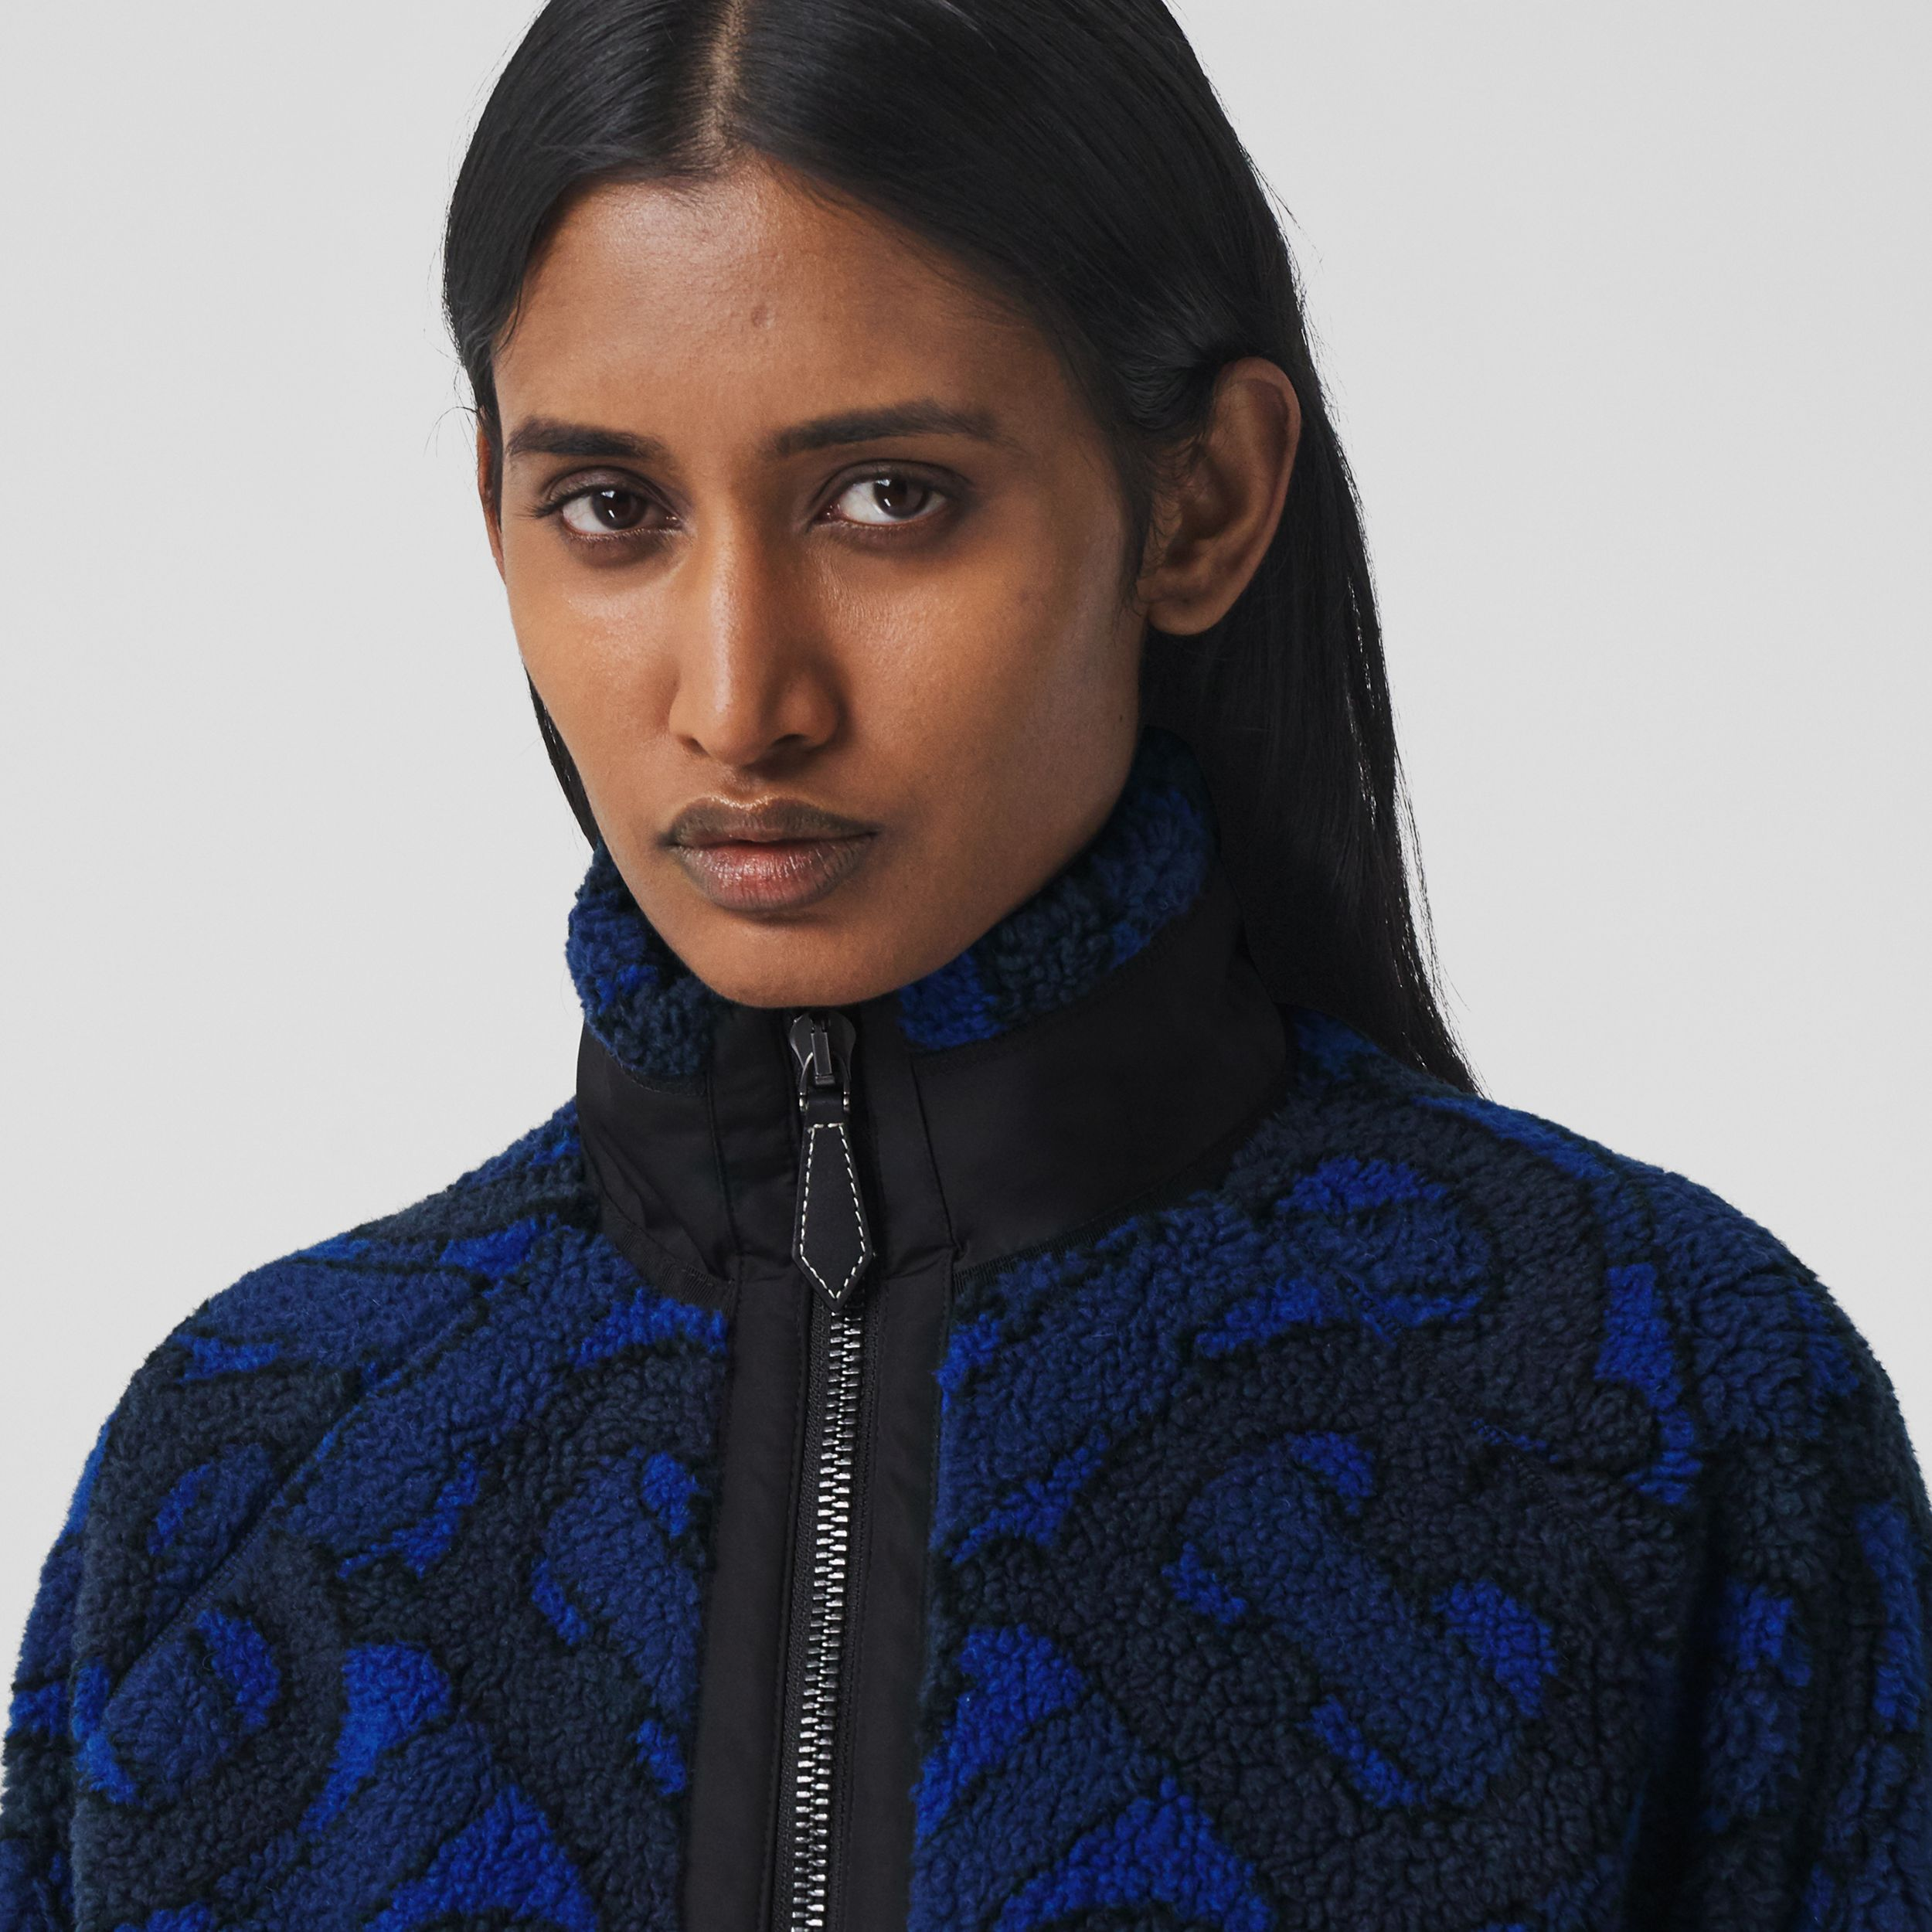 Monogram Fleece Jacquard Jacket in Navy - Women | Burberry - 2